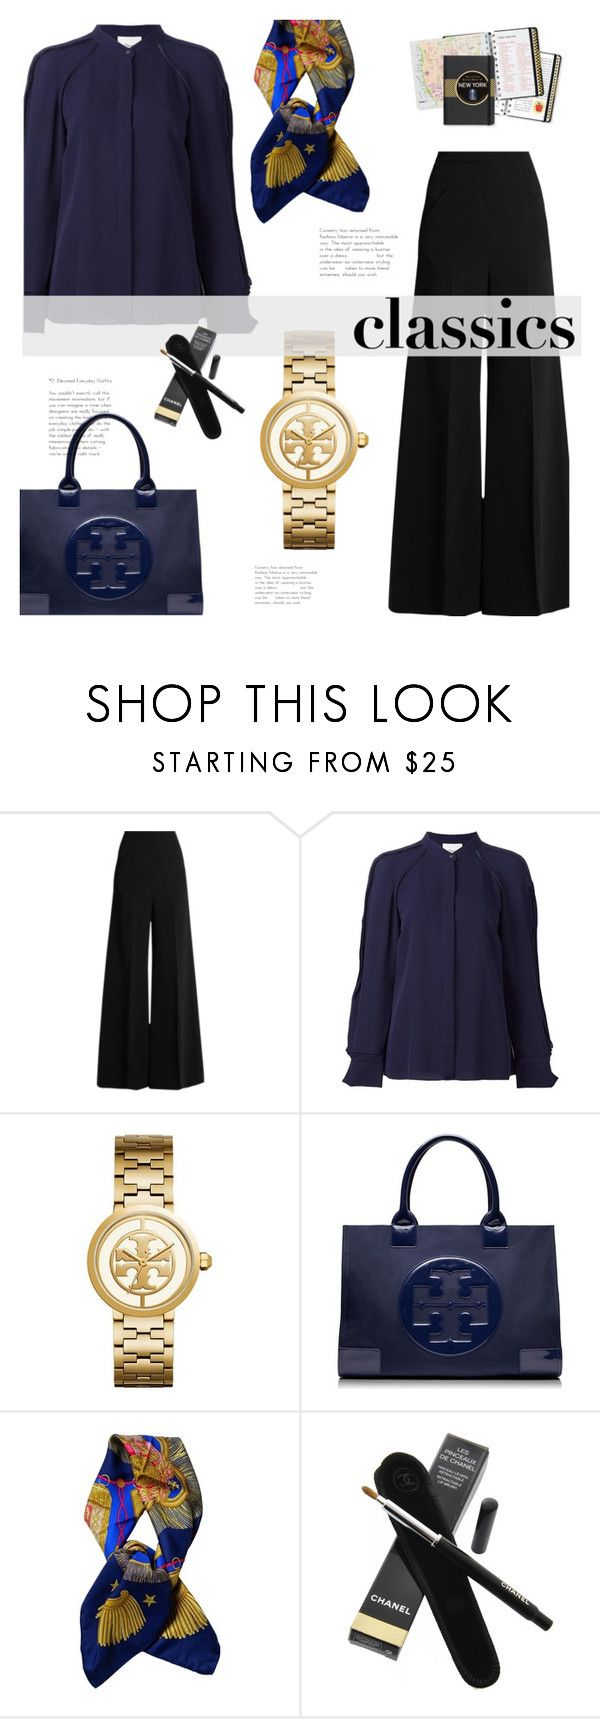 """""""wardrobe staples"""" by heloisacintrao ❤ liked on Polyvore featuring Roland Mouret, 3.1 Phillip Lim, Tory Burch, Hermès, Chanel and Peter Pauper Press"""